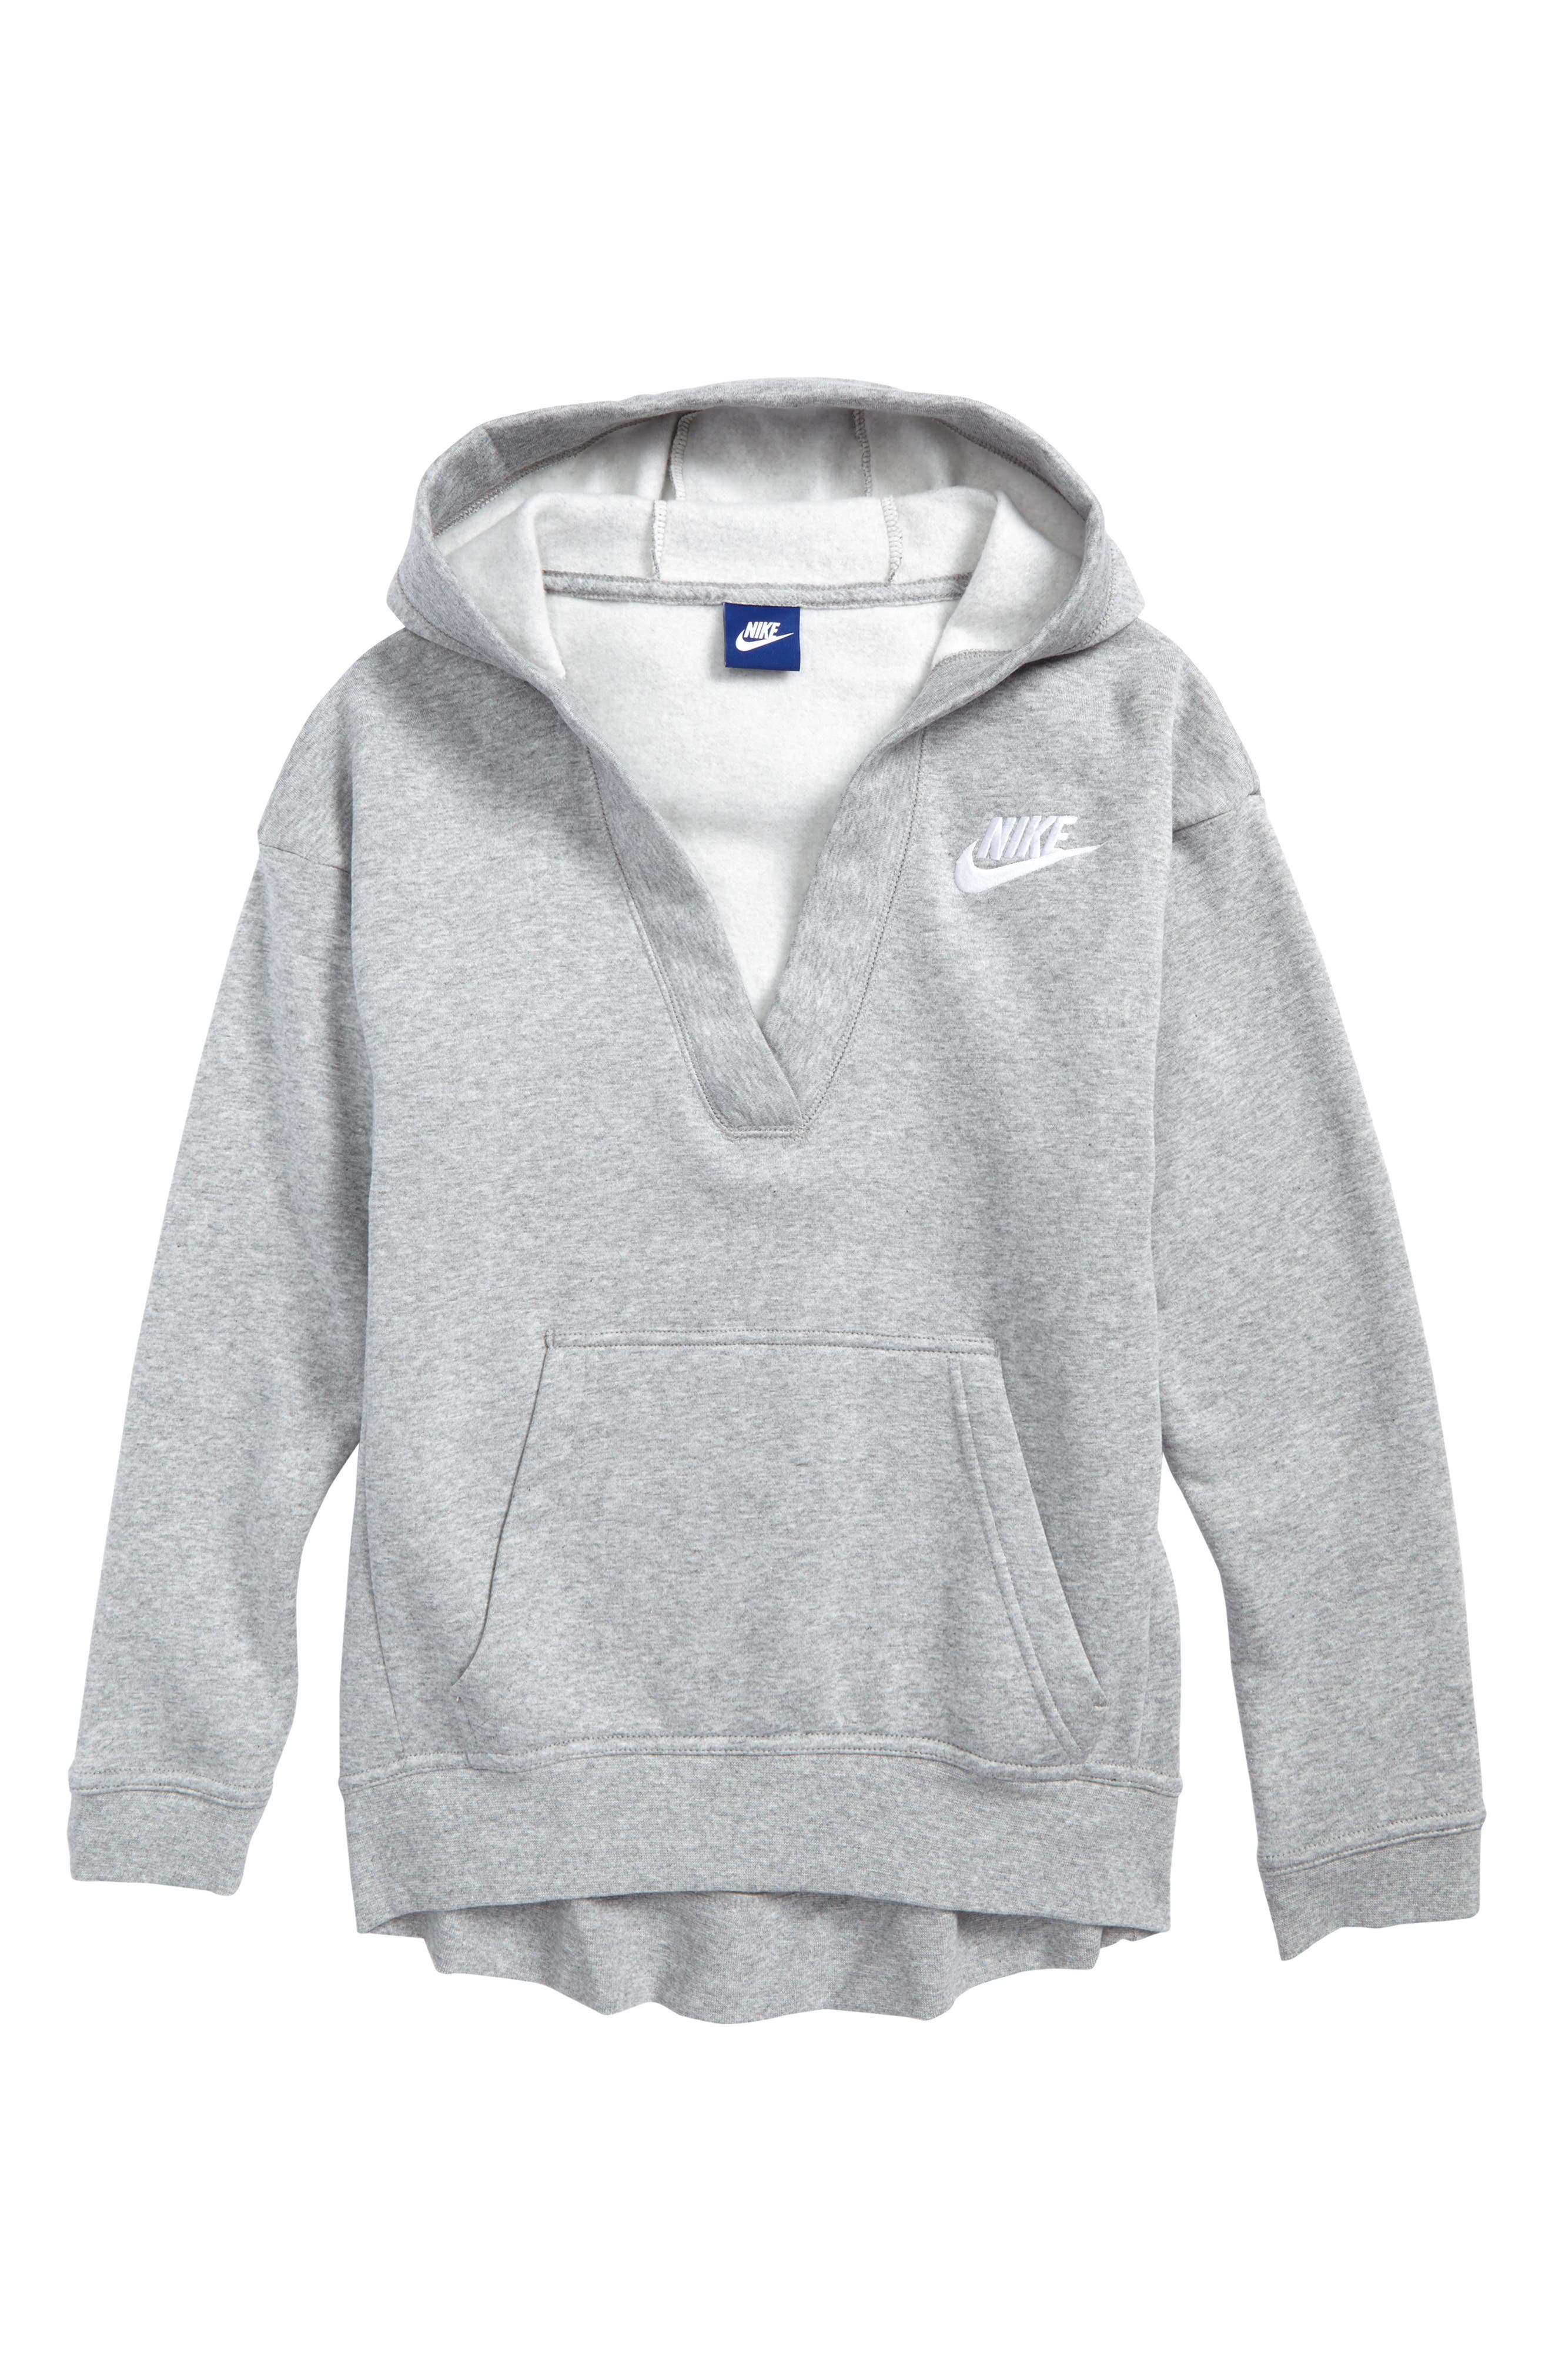 V-Neck Pullover Hoodie,                             Main thumbnail 1, color,                             Dark Grey Heather/ White